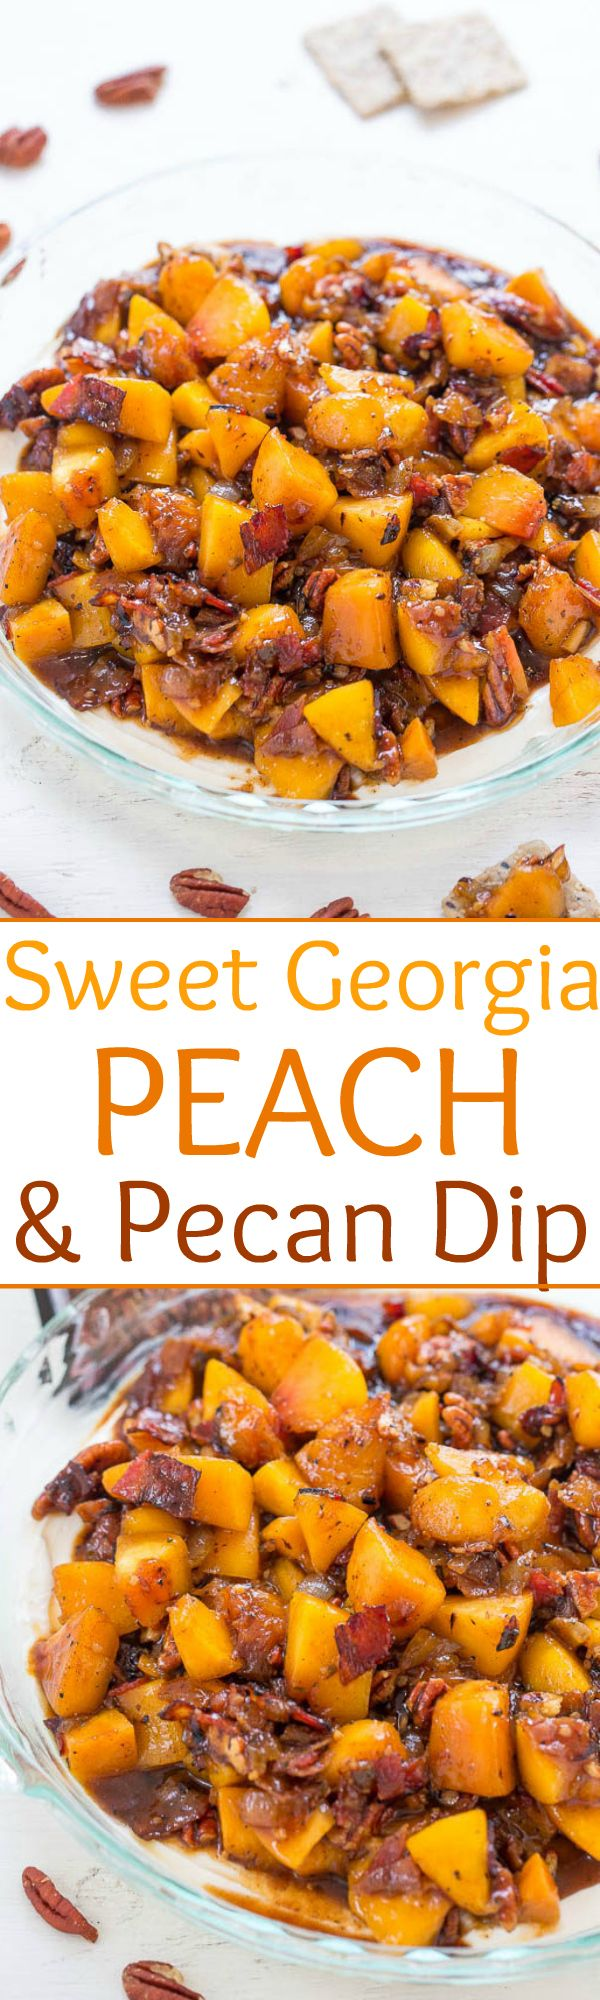 Sweet Georgia Peach and Pecan Dip - Peaches, onions, bacon, and pecans mixed with a brown sugar bourbon marinade and added to cream cheese!! Sweet, savory, tangy! Great for parties or game day events!!